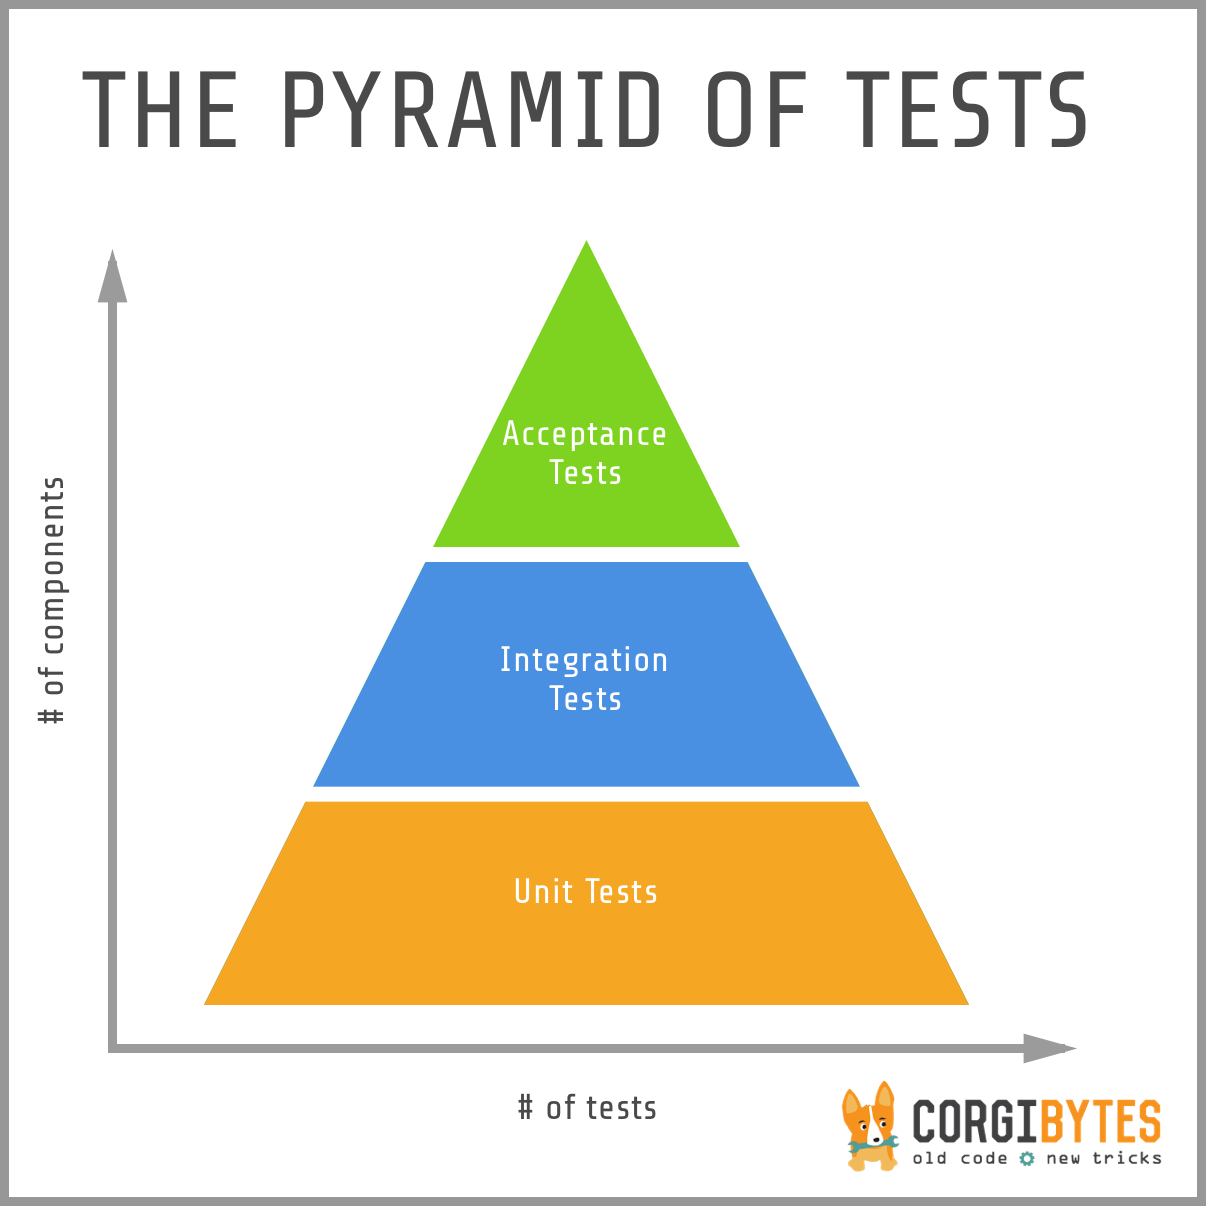 Pyramid of Tests